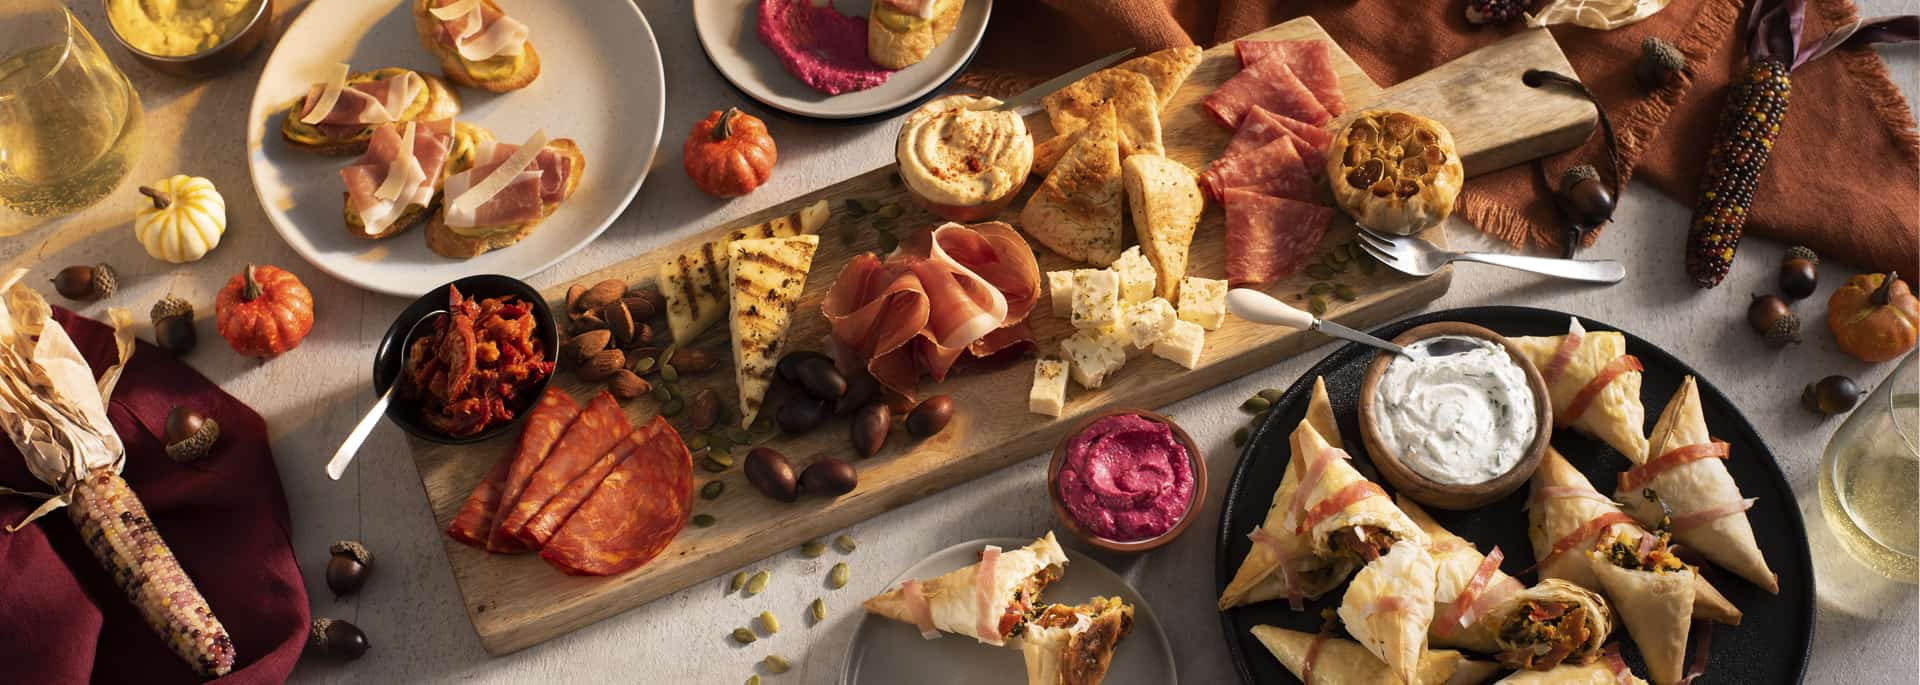 About Charcuterie Trio